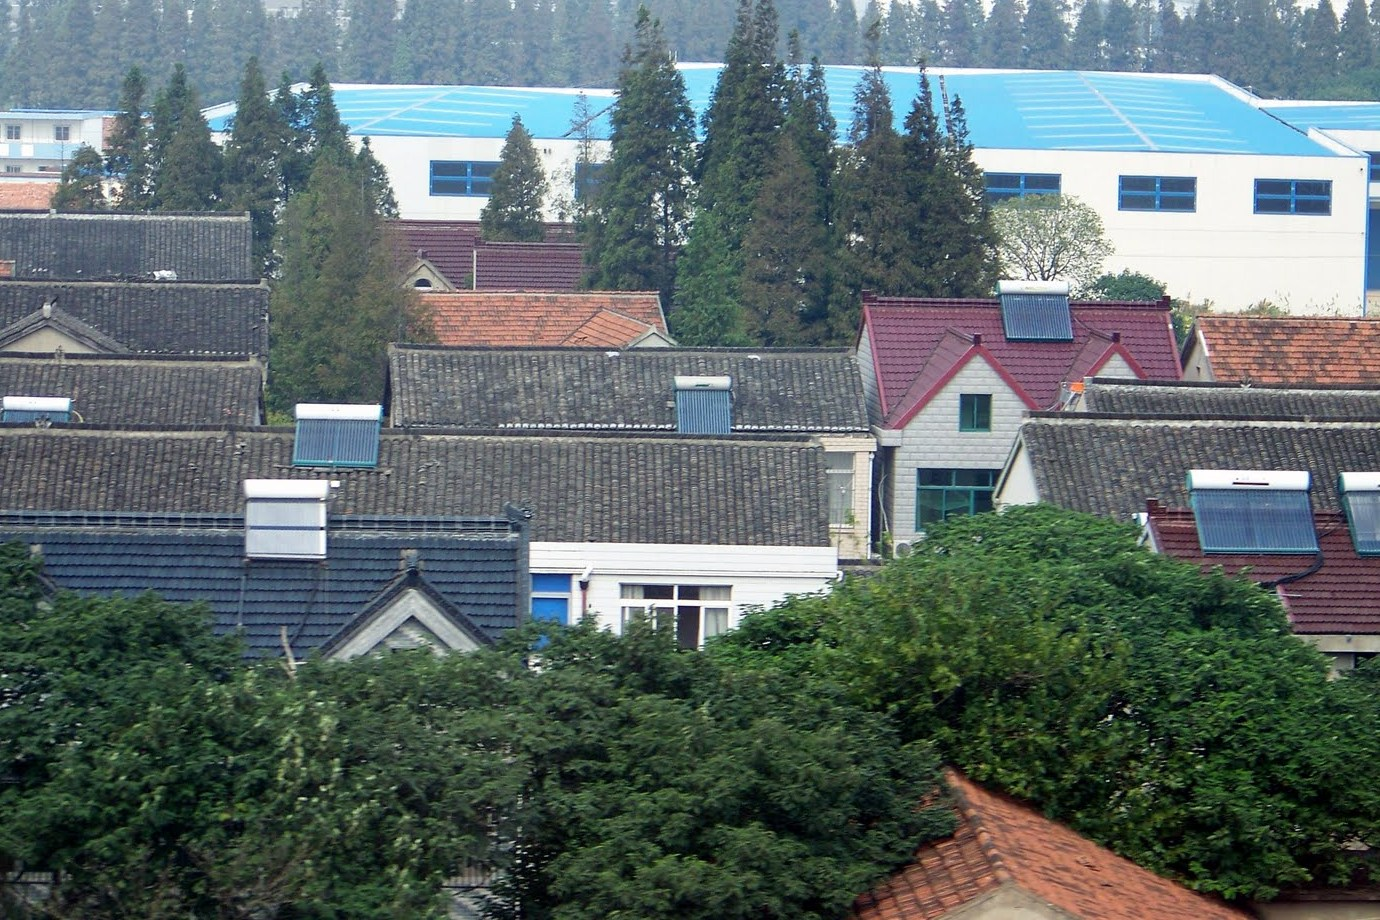 Solar thermal evacuated tubes on numerous homes in Shanghai, China